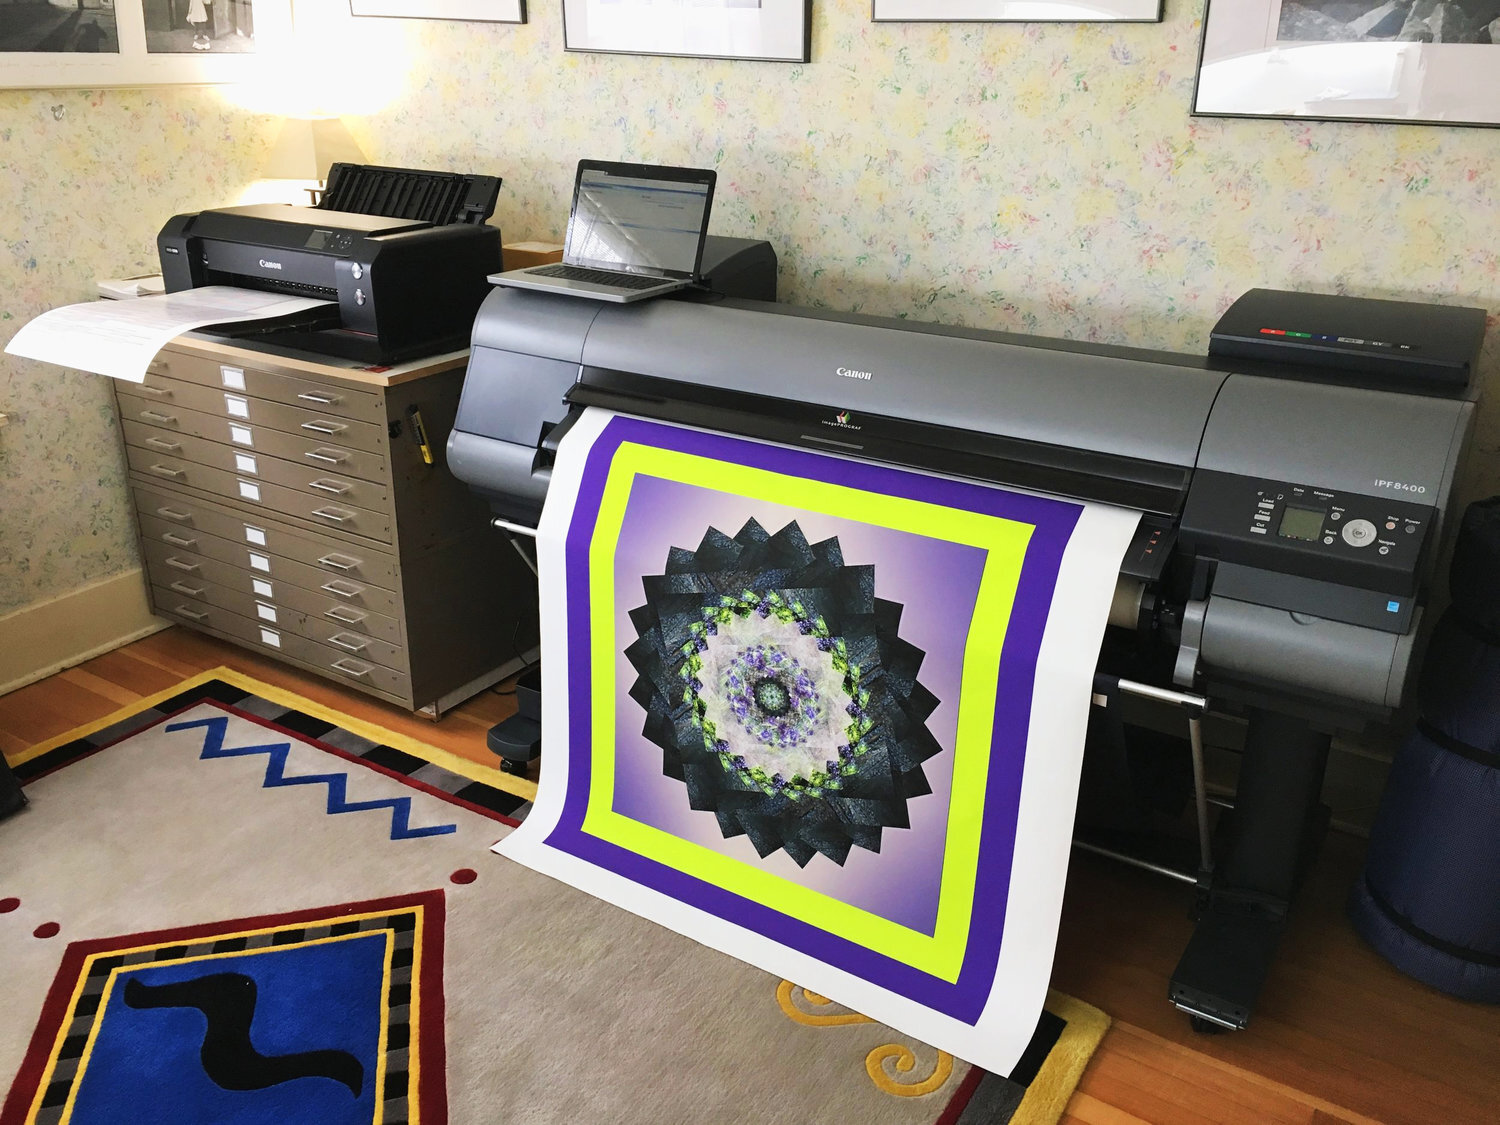 Our exciting new printers; the Canon Prograf1000 on the left and the Canon iPF8400 on the right. These are superb pigment inkjet printers using the amazing Lucia pigment inks, Definition and resolution are outstanding, better than anything else out there.